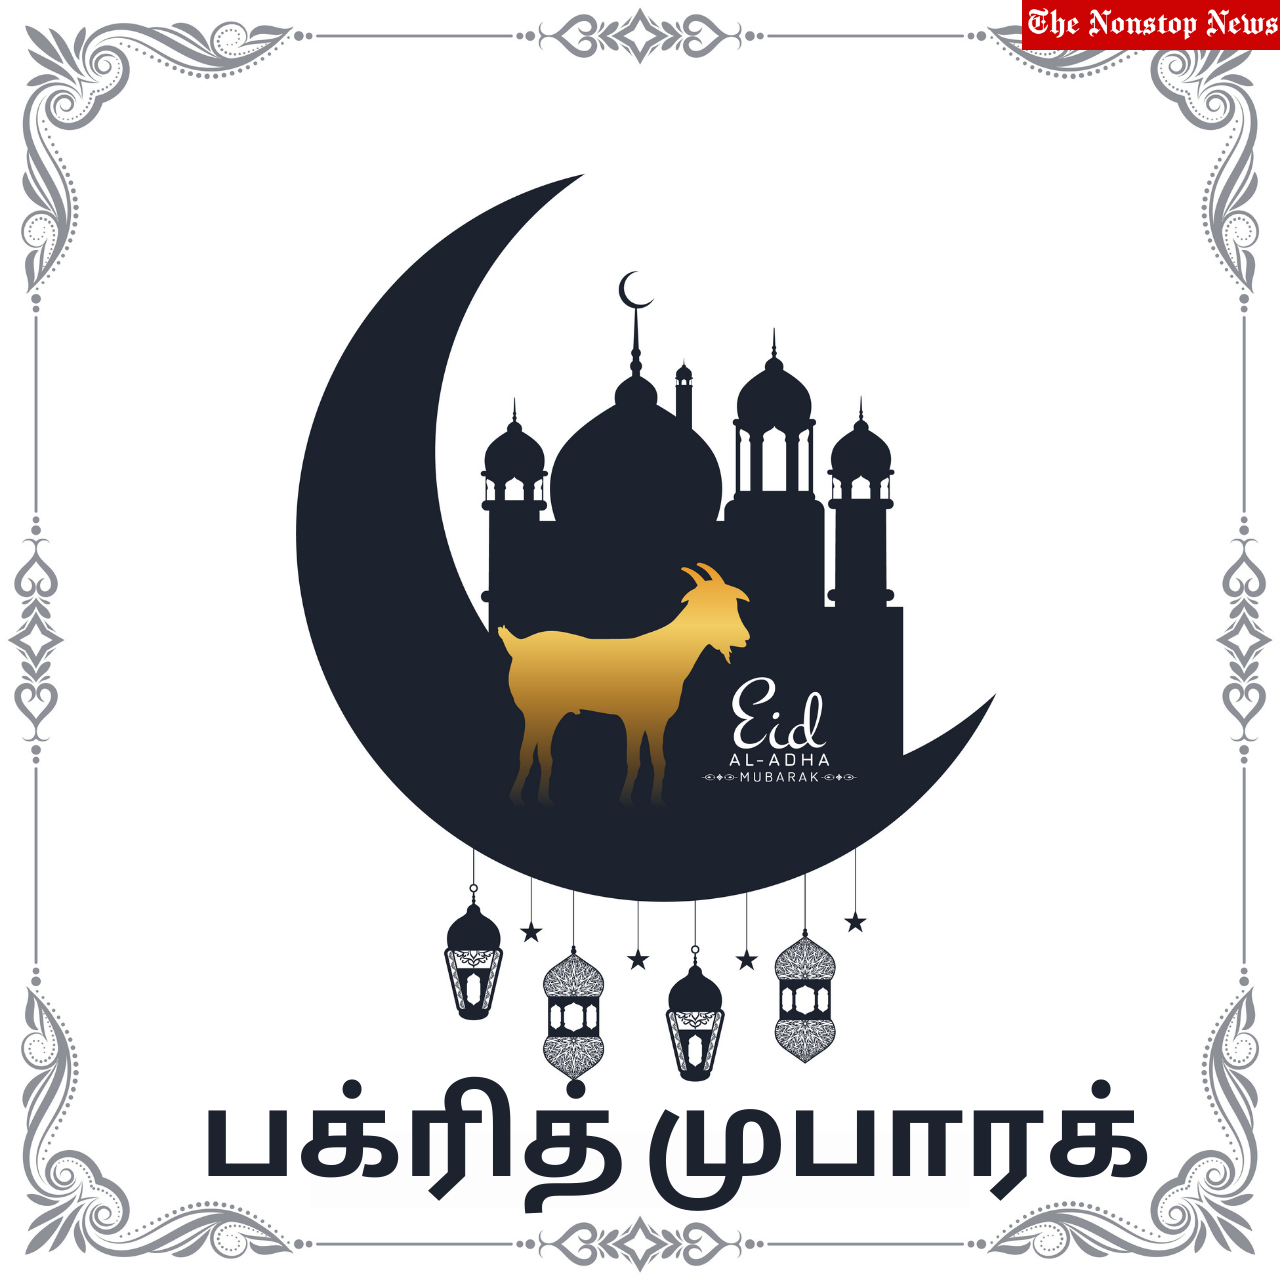 Bakrid Mubarak 2021 Tamil and Malayalam Wishes, Images, Quotes, Greetings, Status, Messages, and Dua to greet your Friend, Relative, or Loved Ones on Eid ul Adha